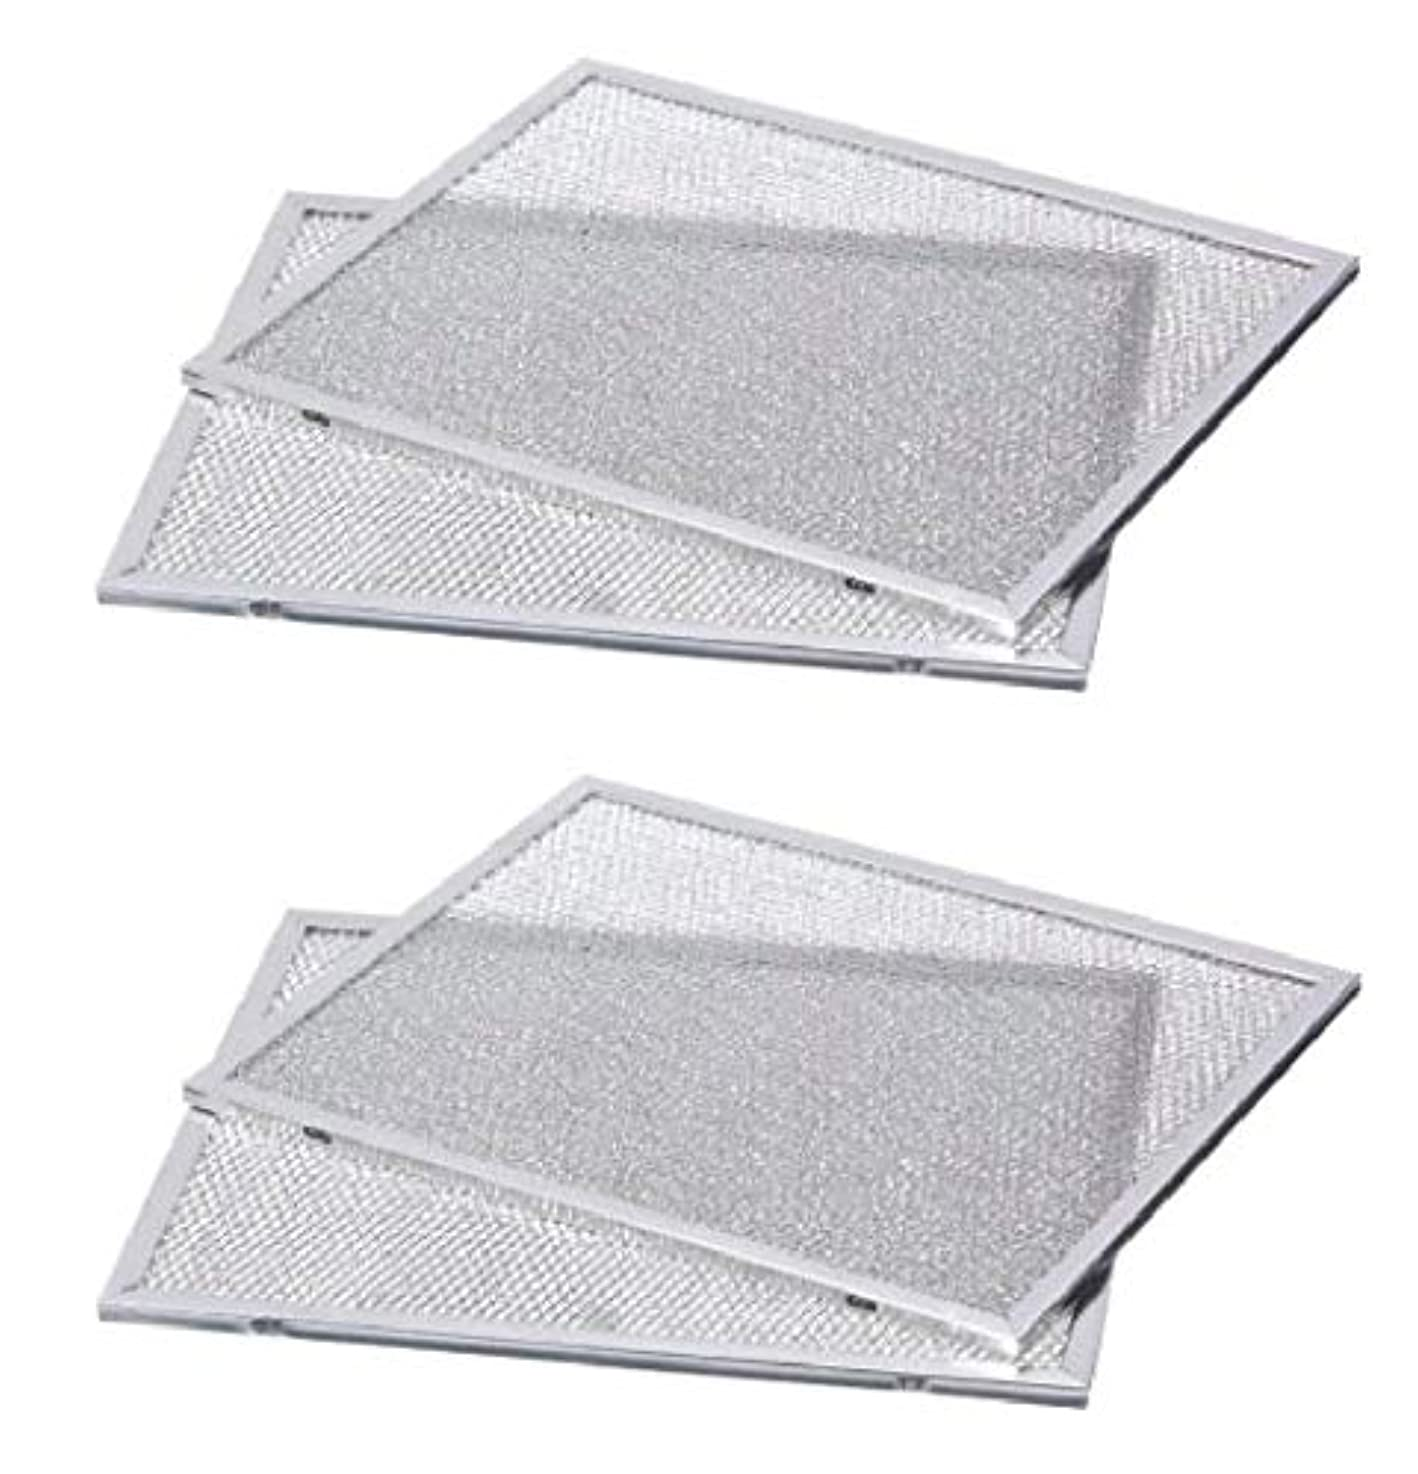 Nispira Replacement Grease Filter Compatible with Broan QS1 and WS1 30